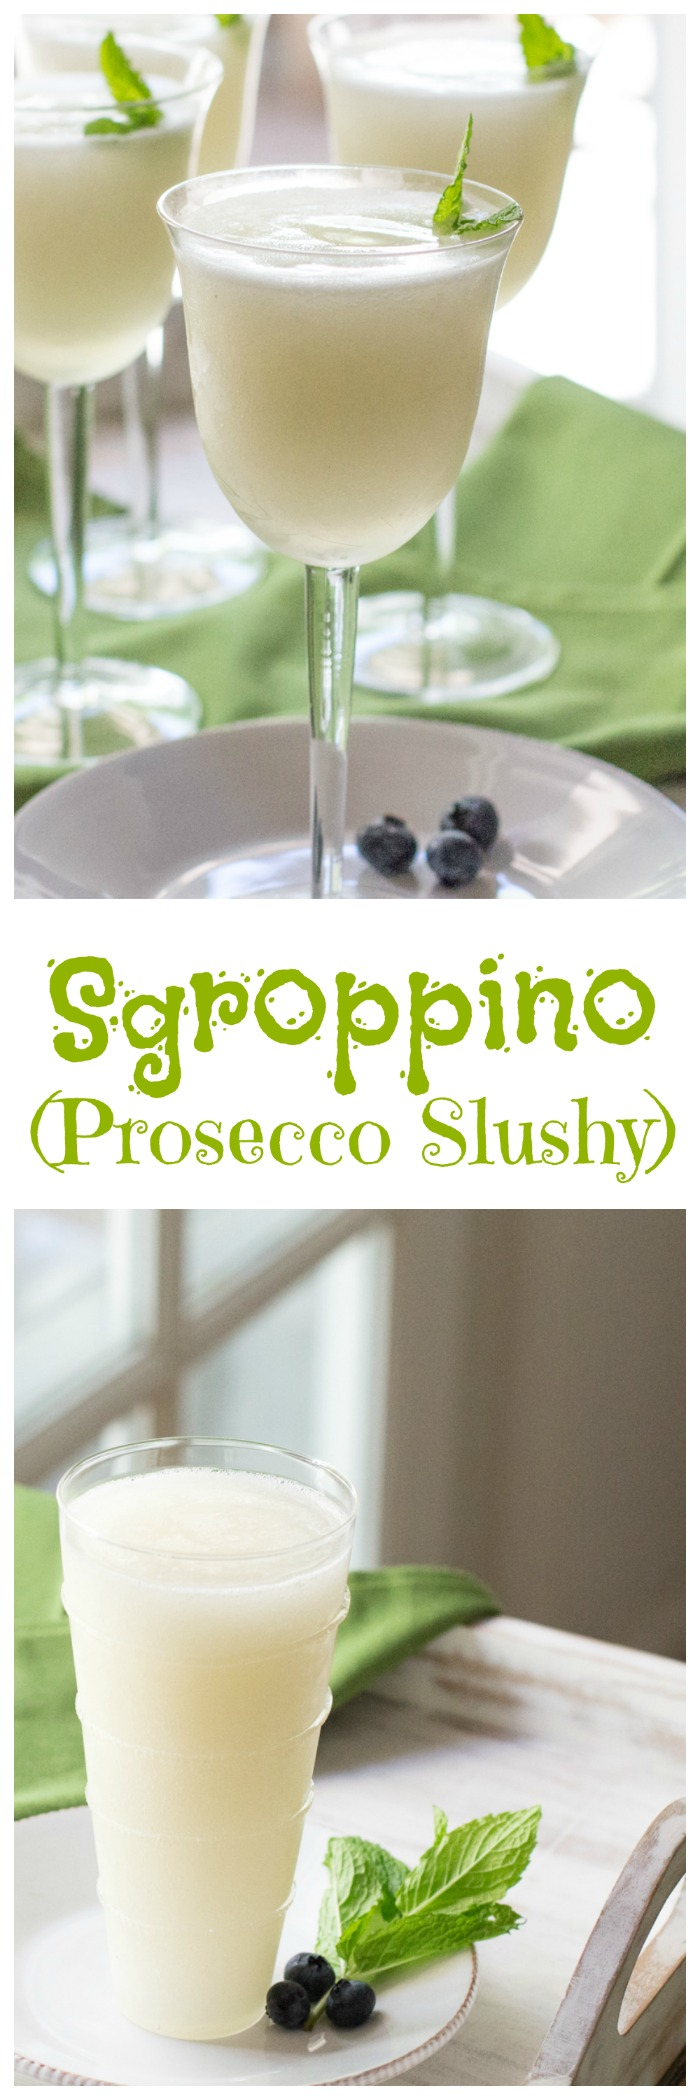 Sgroppino - a frothy Italian dessert cocktail of sorbet, Prosecco, and vodka.